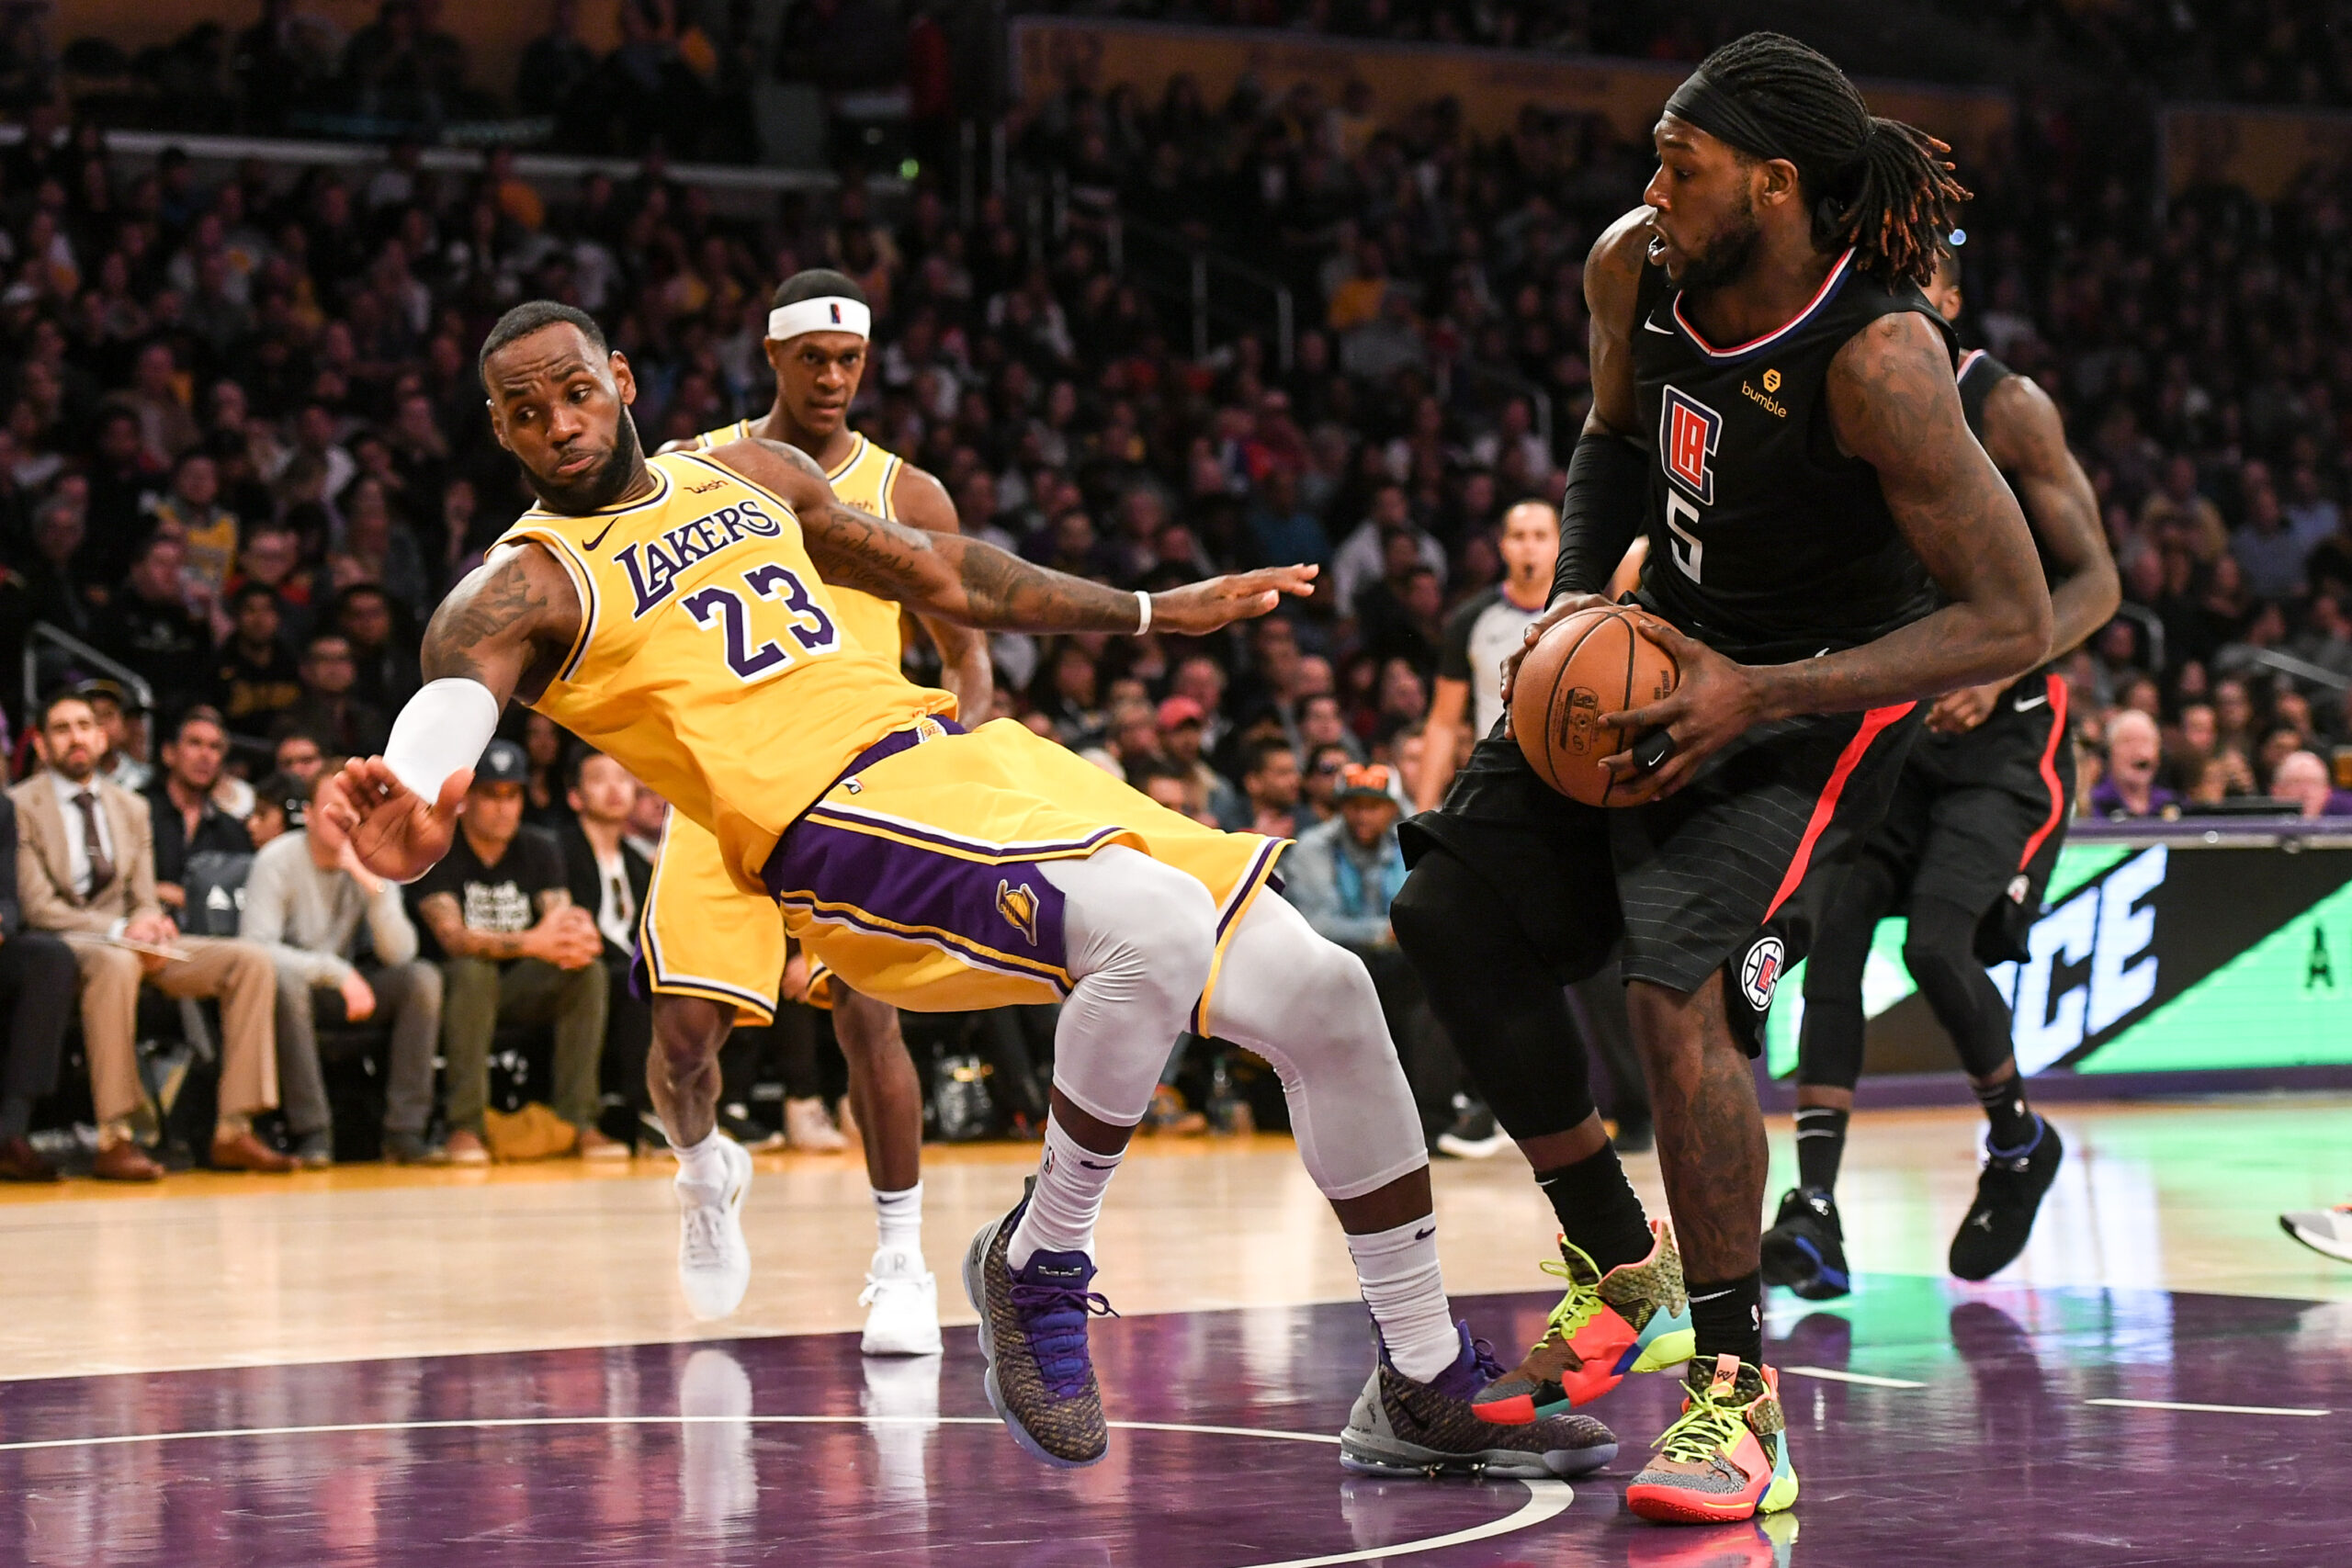 LeBron James and Montrezl Harrell, Los Angeles Lakers vs L.A. Clippers at Staples Center